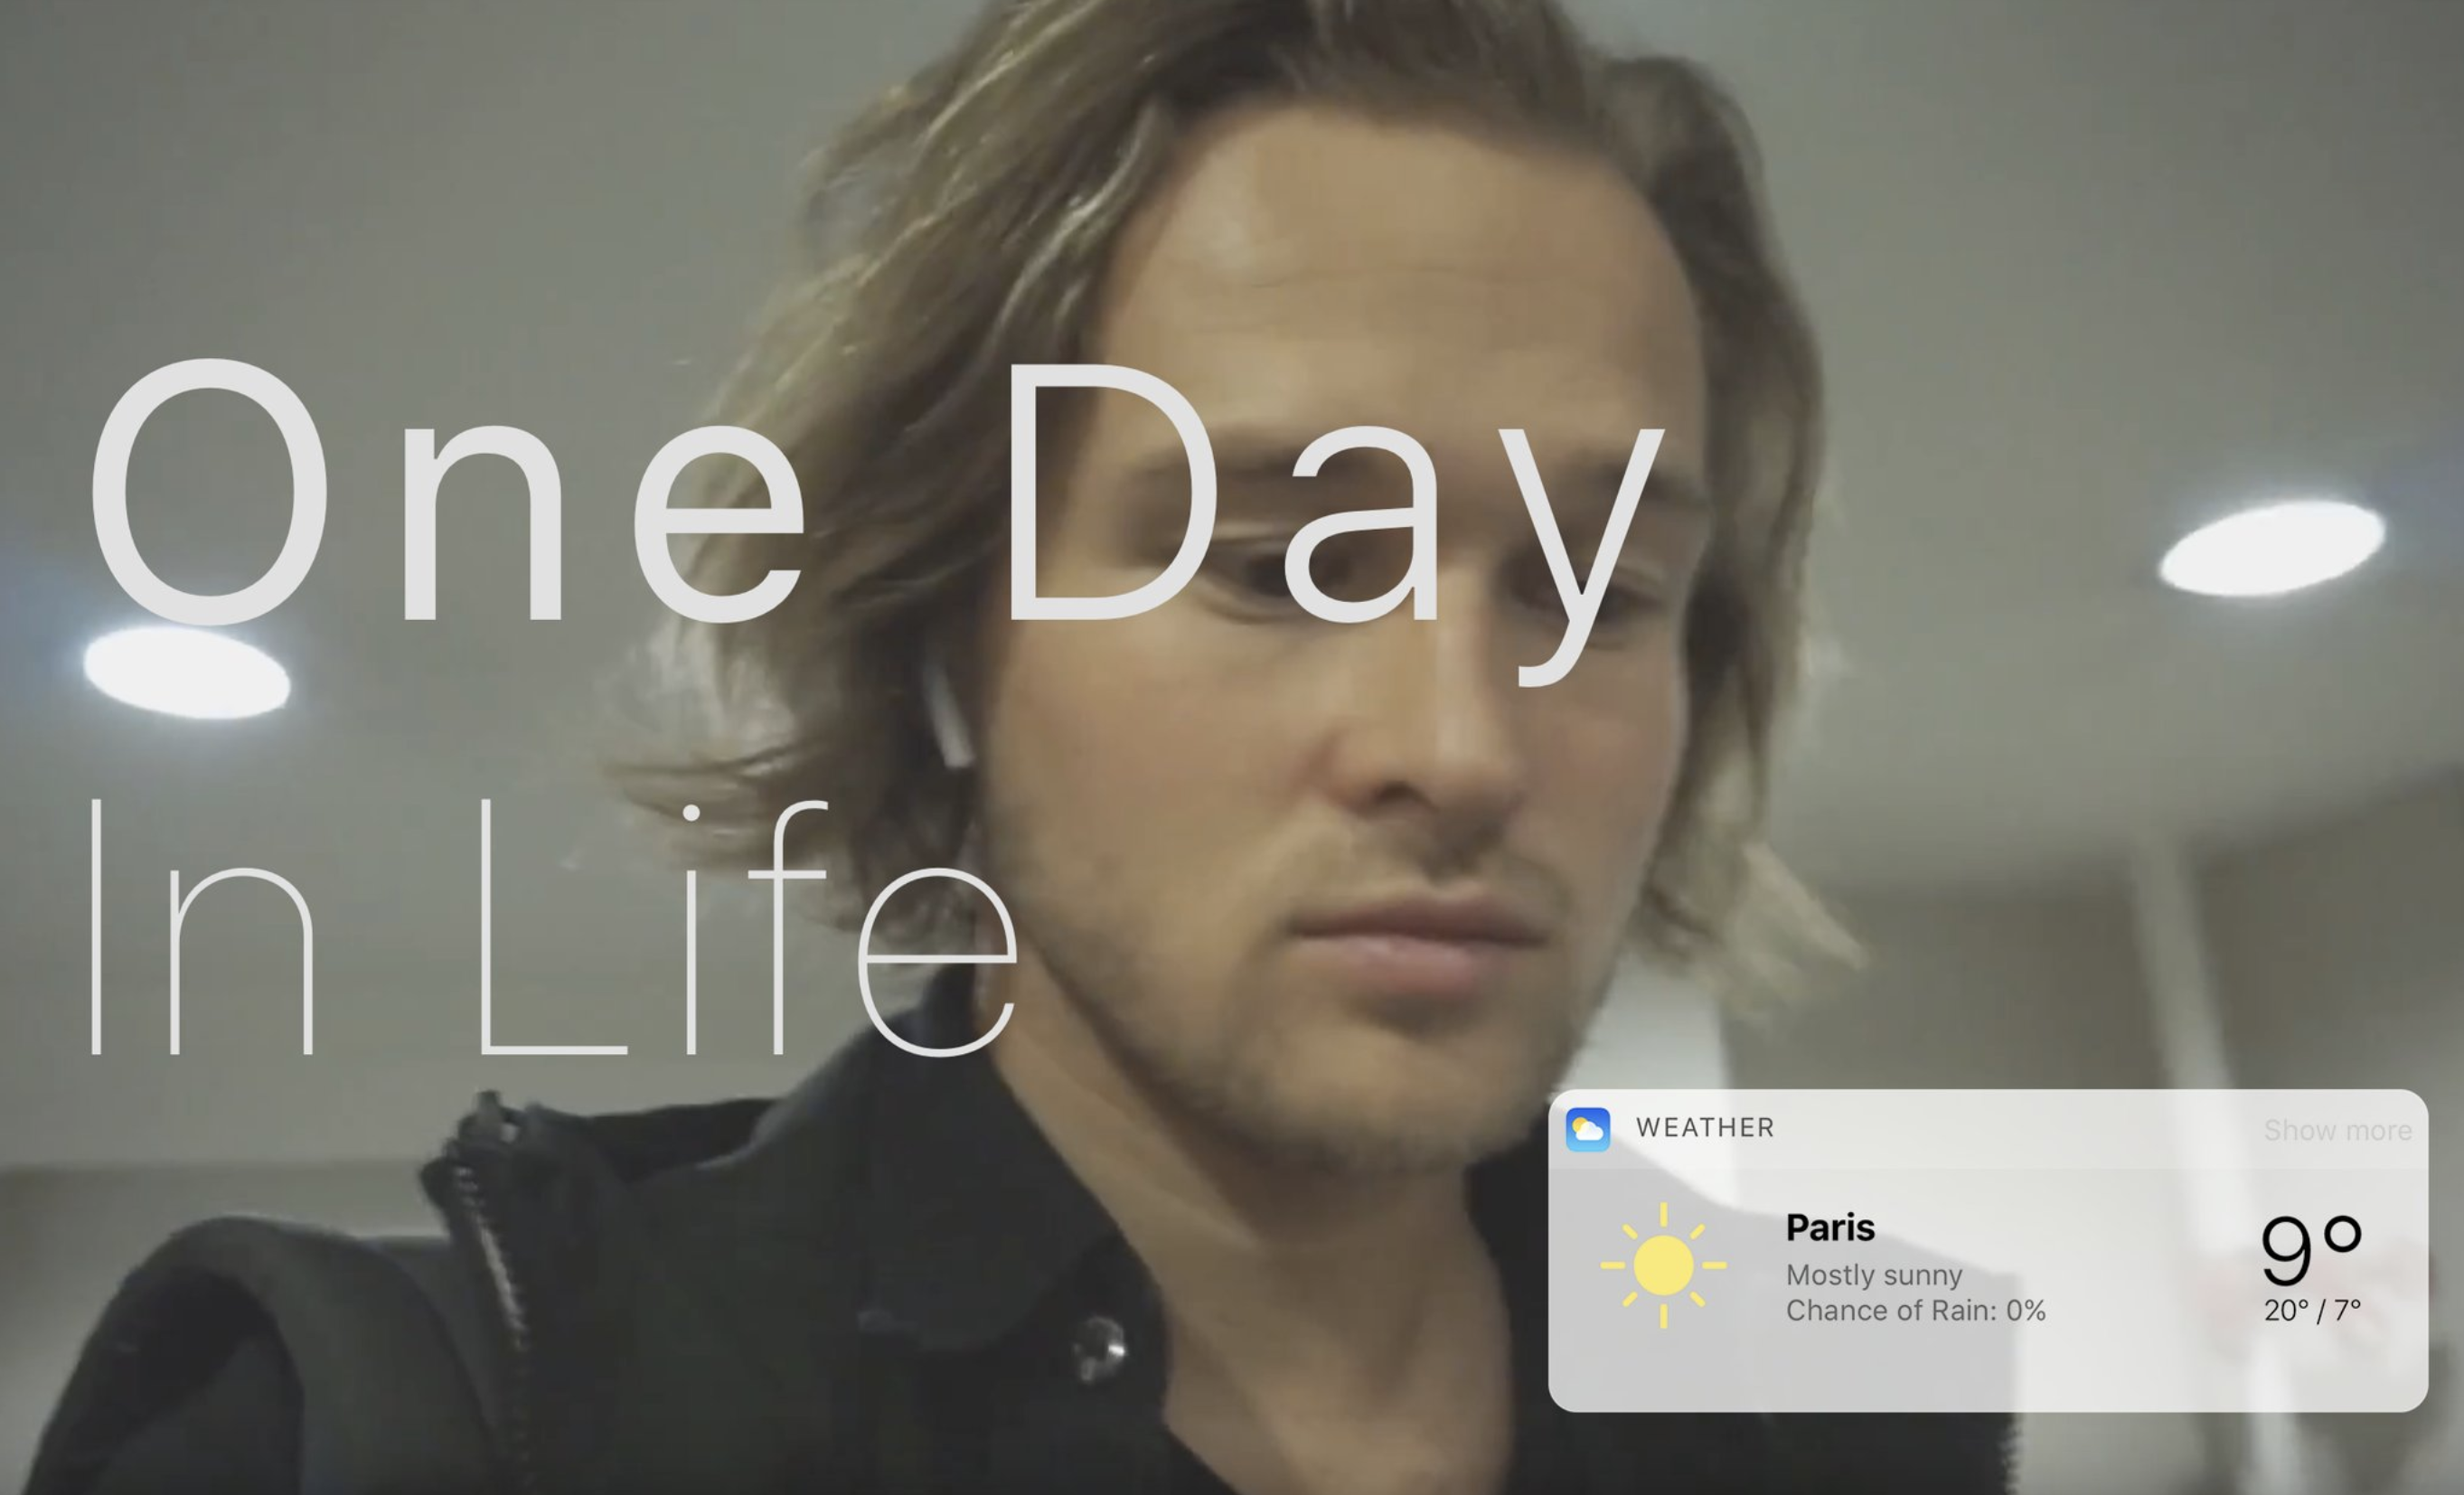 [VIDEO] one day in life of SAP software engineer: why? how? difficulty? views?